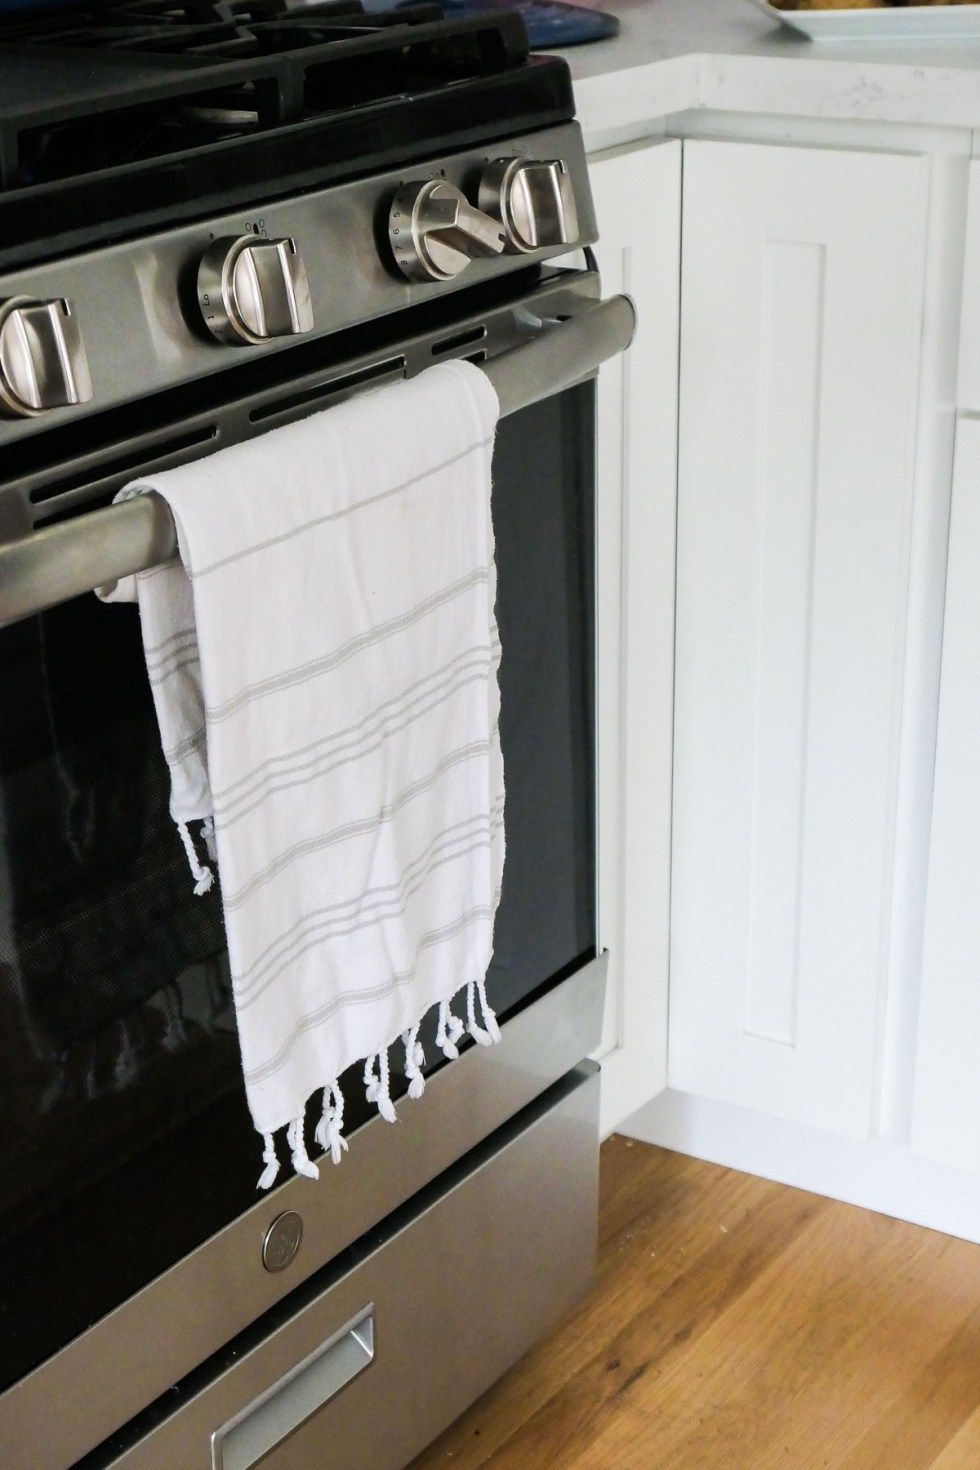 Dish Towel on Oven - How to Stop Using Paper Towels